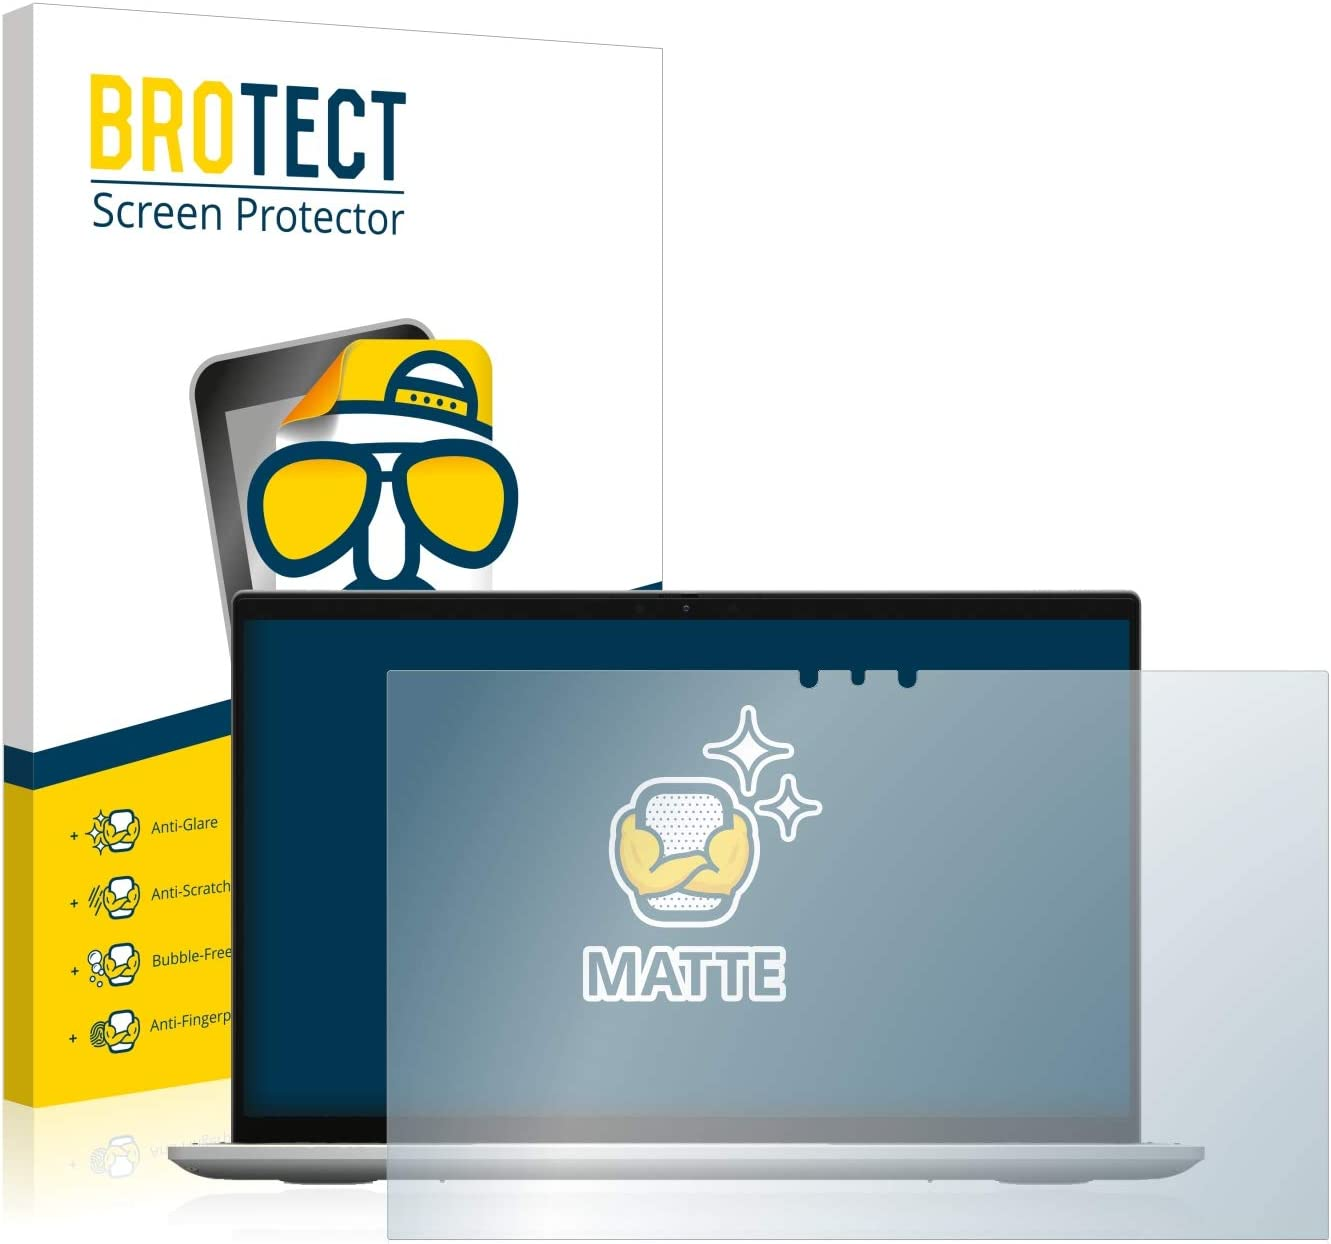 Anti-Fingerprint Protection Film brotect 1-Pack Screen Protector Anti-Glare compatible with Dell Inspiron 13 7306 Screen Protector Matte